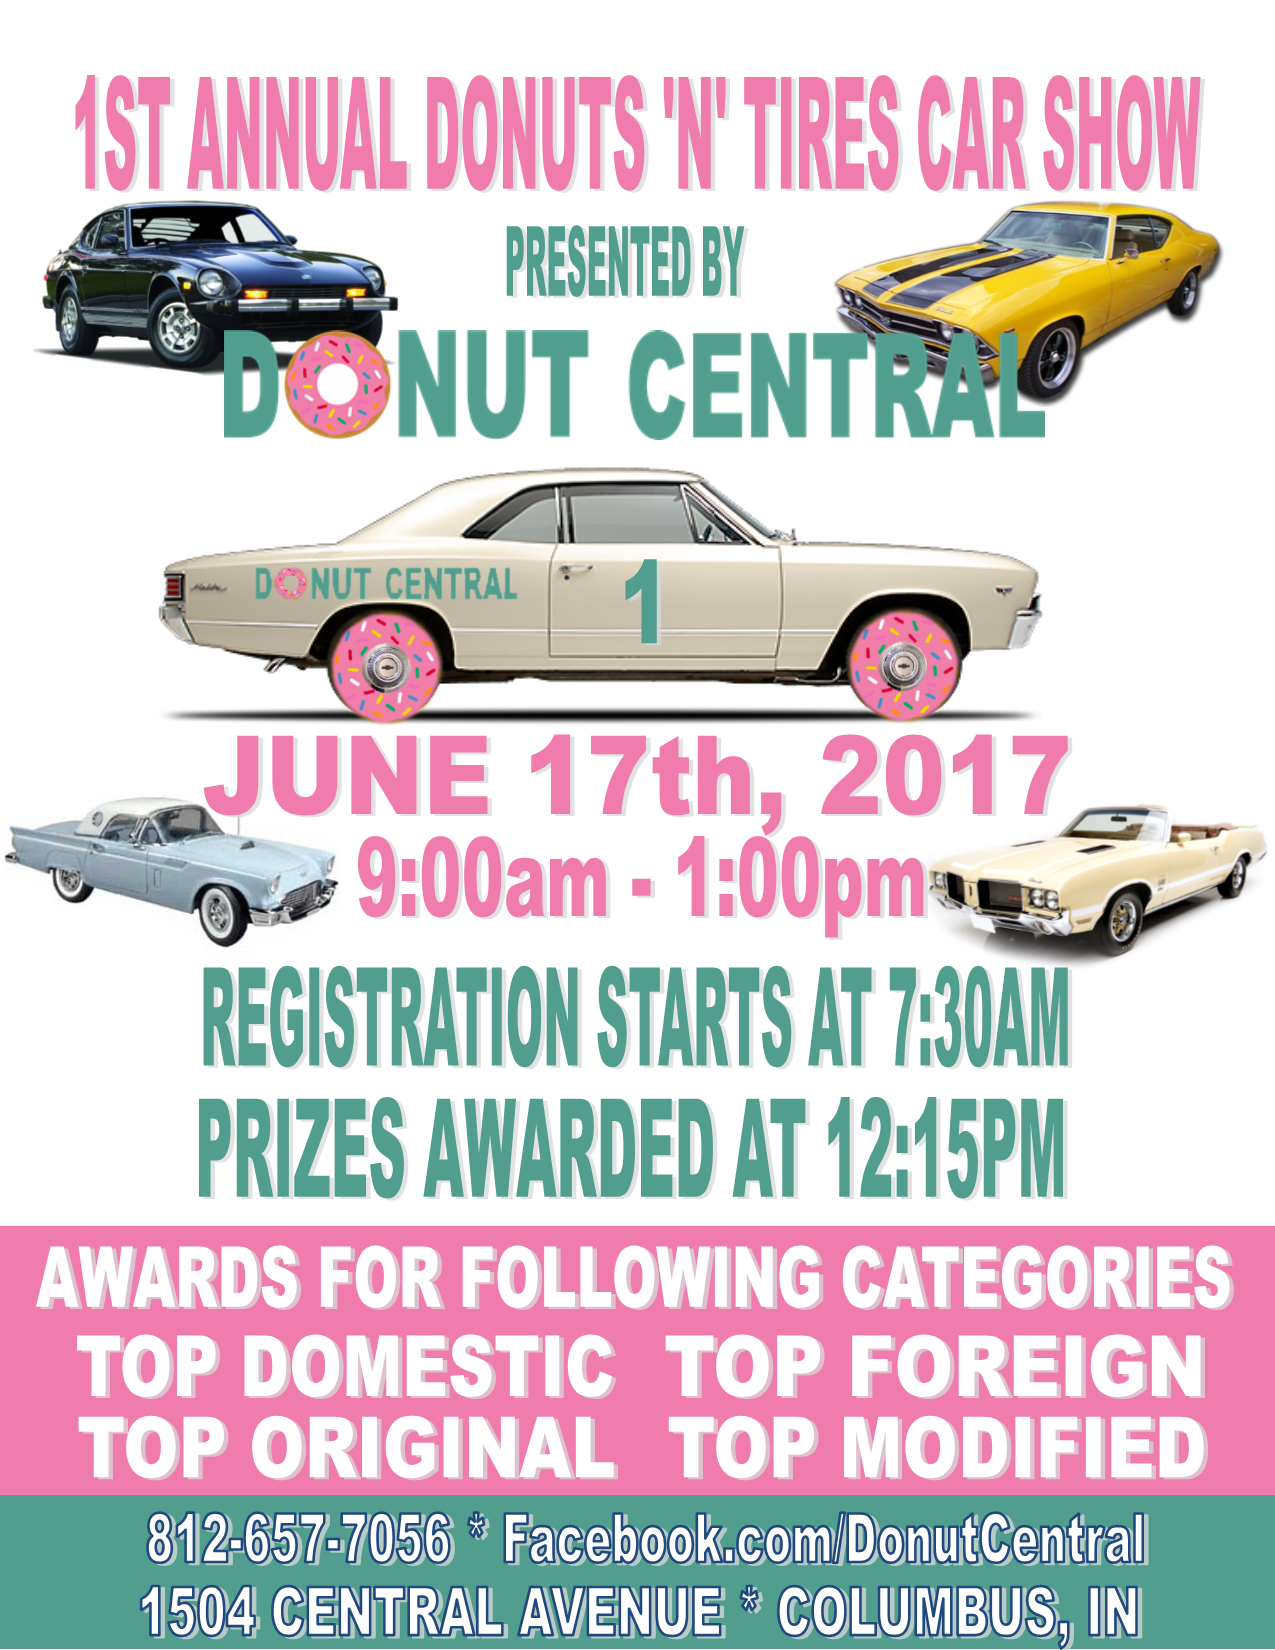 Donut Centrals Donuts N Tires Car Show And Festival - Car show award categories